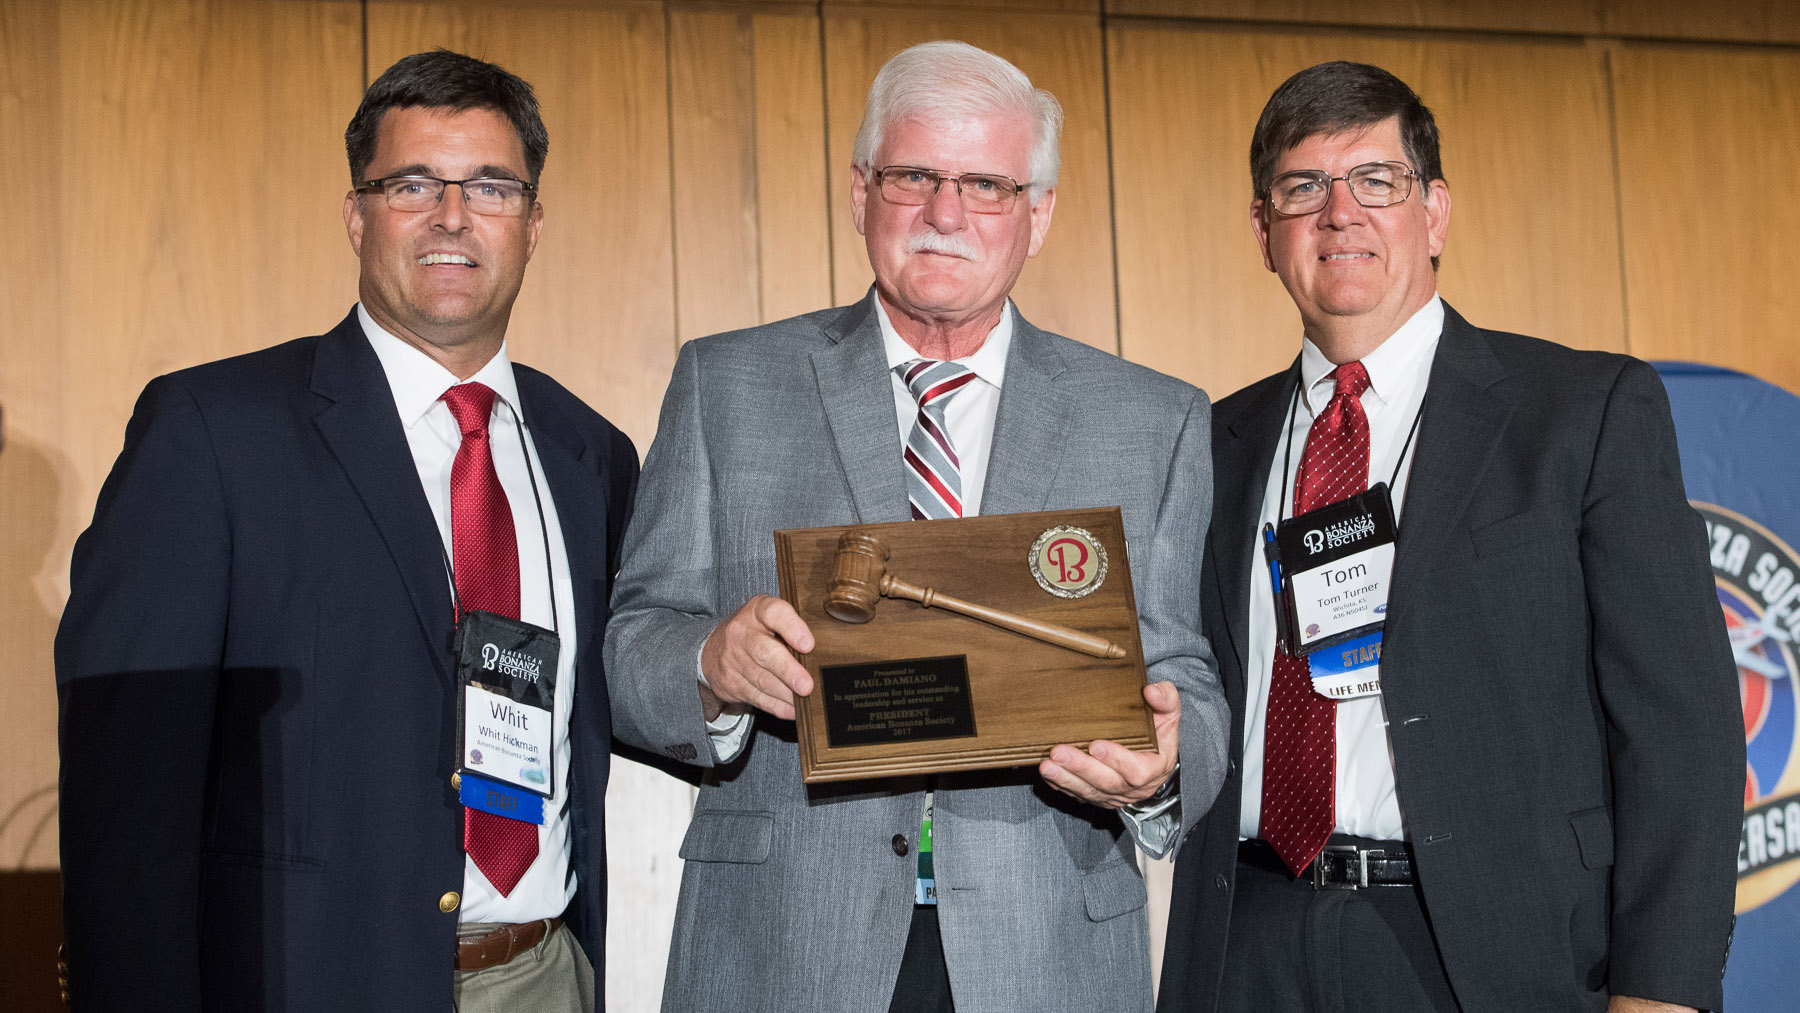 American Bonanza Society Executive Director Whit Hickman (left) and ABS Air Safety Foundation Executive Director Tom Turner (right) recognize the work of outgoing President Paul Damiano during the type club's fiftieth anniversary convention in Wichita. Photo courtesy of Visual Media Group.